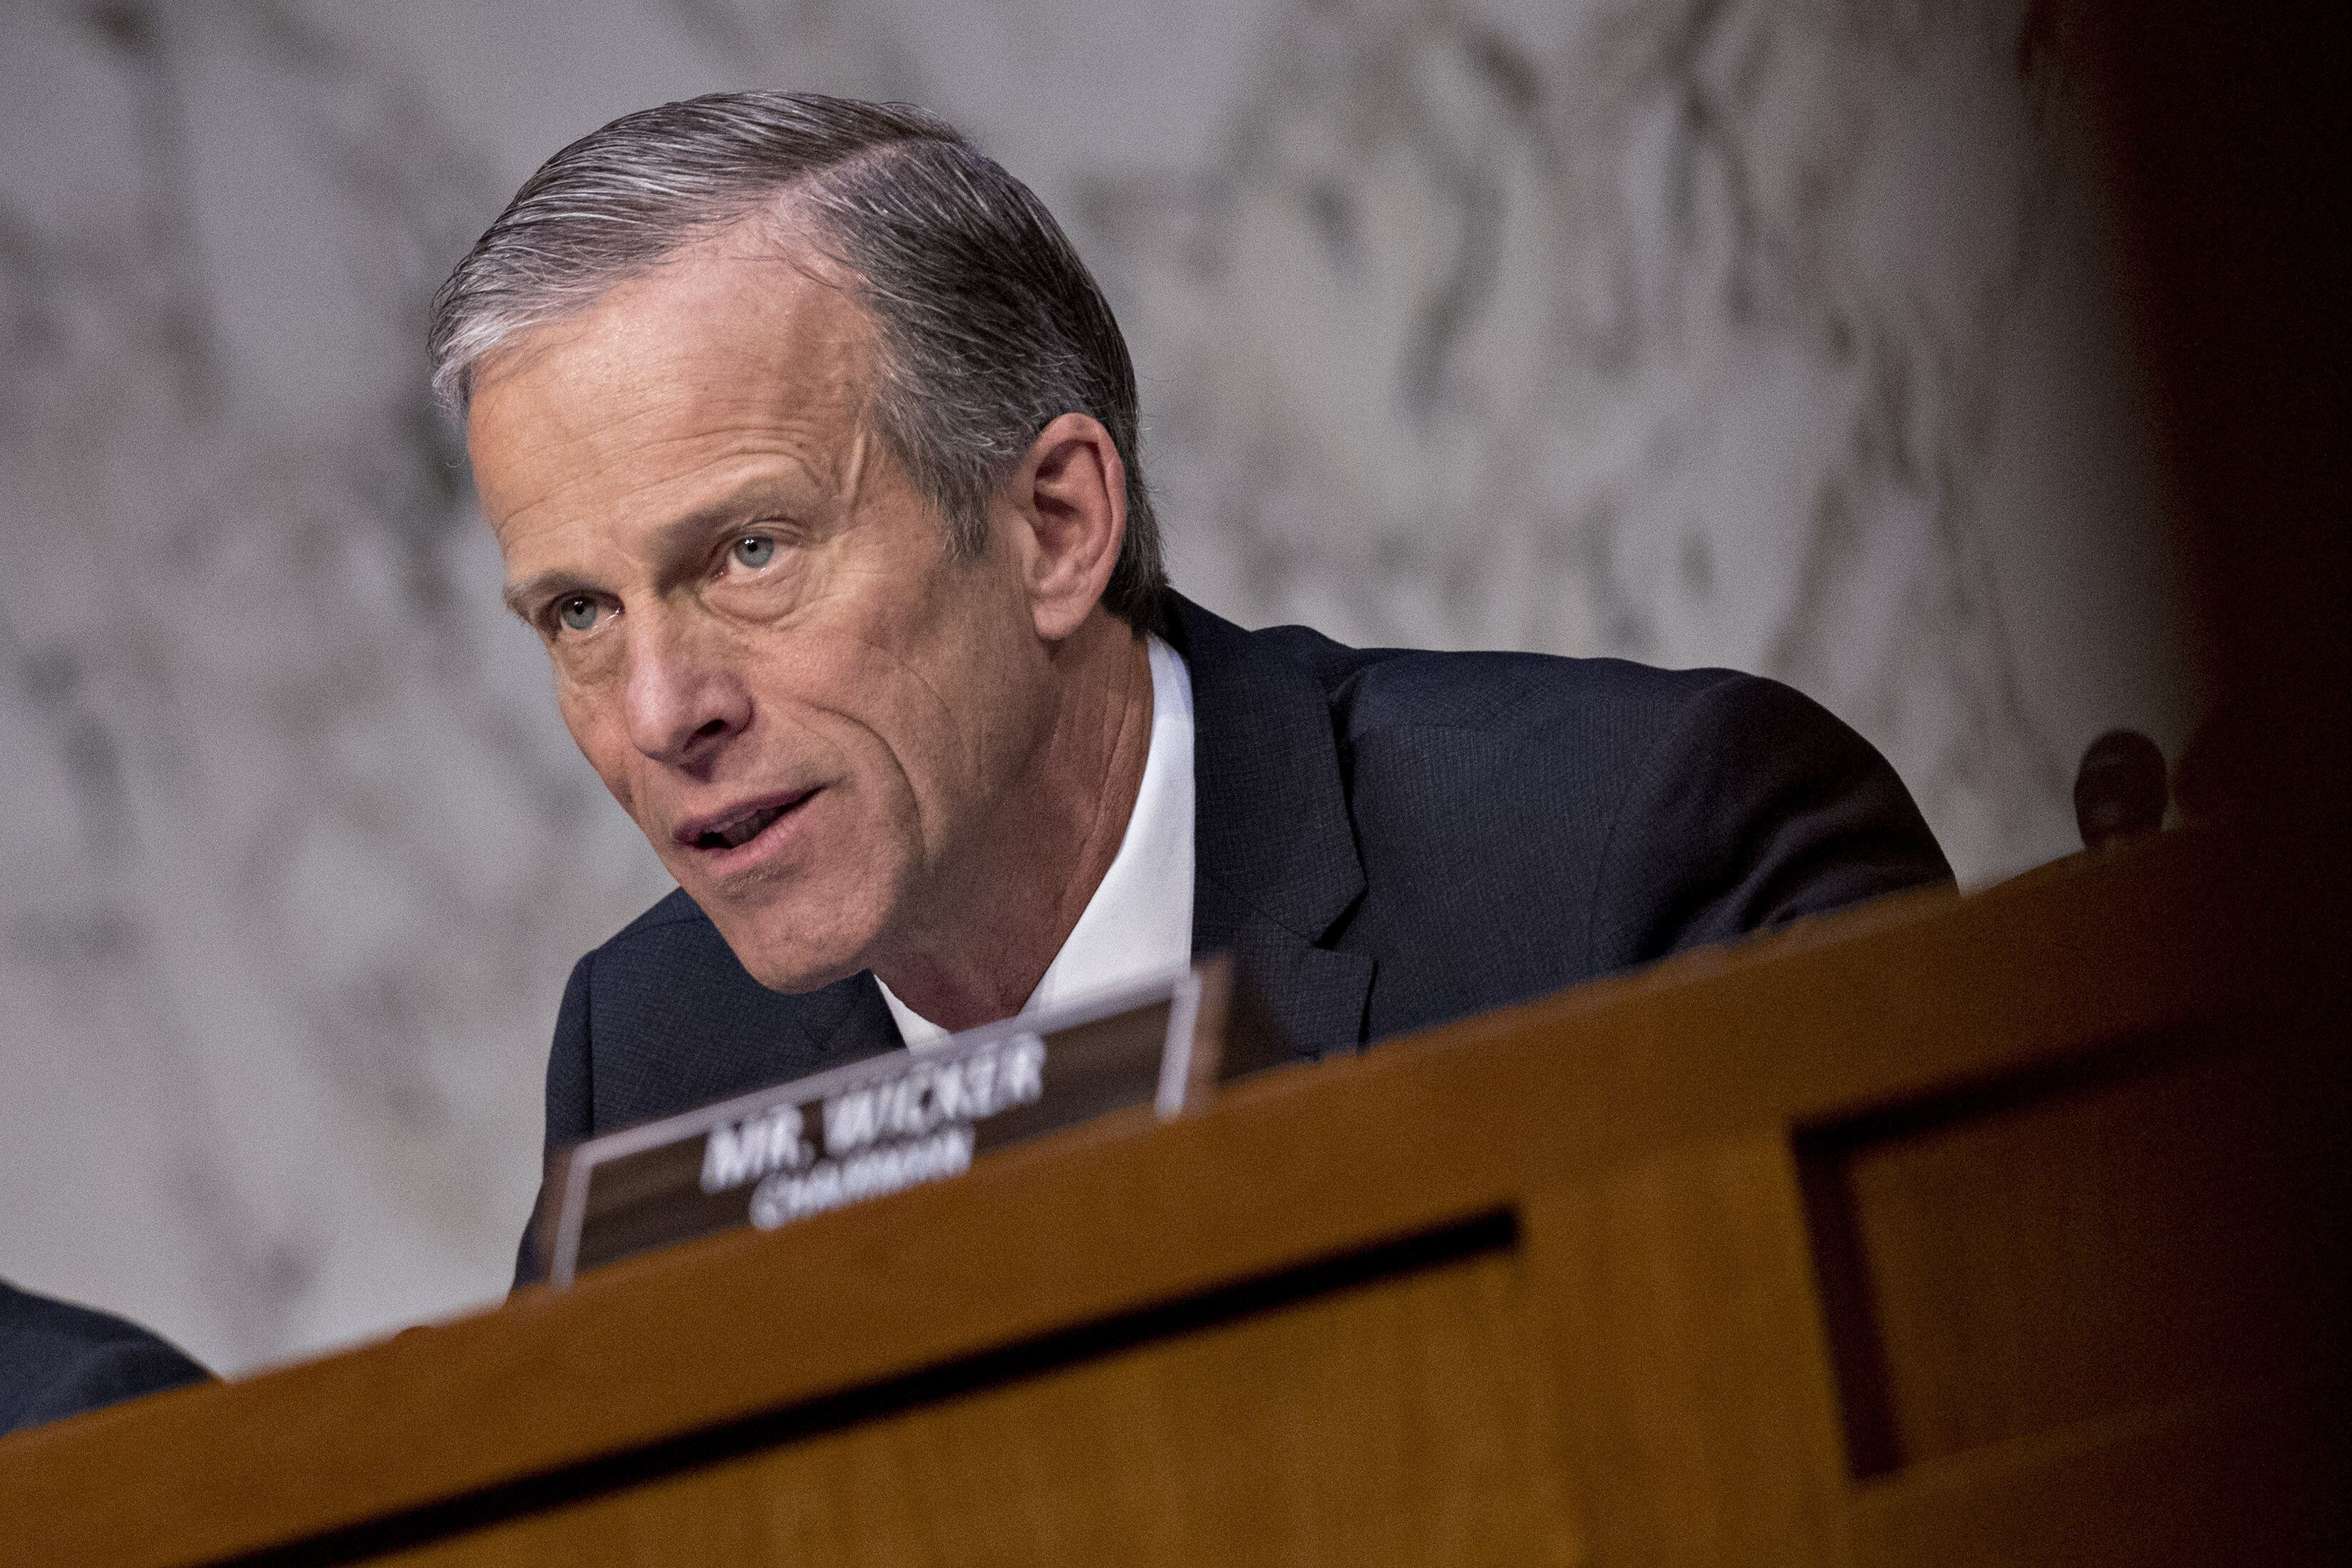 Senator John Thune, a Republican from South Dakota, questions witnesses during a Senate Commerce, Science and Transportation Subcommittee hearing in Washington, D.C., U.S., on Wednesday, March 27, 2019. U.S. aviation regulators were directly involved in the review and approval of the anti-stall system on Boeing Co.s grounded 737 Max aircraft that has been involved in two fatal crashes, the chief of the Federal Aviation Administration said during the hearing. Photographer: Andrew Harrer/Bloomberg via Getty Images